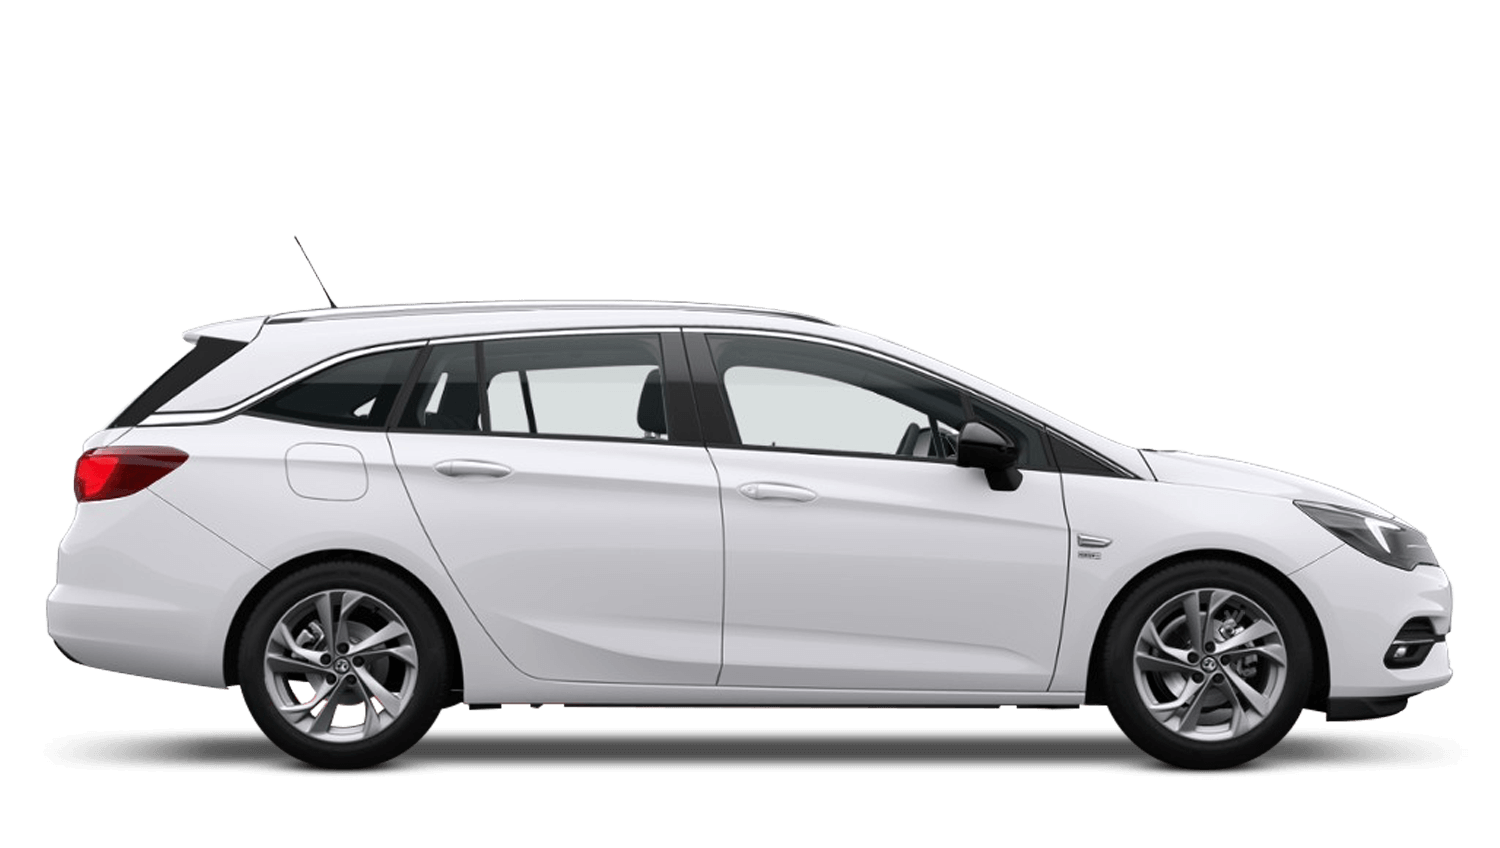 Summit White (Solid) New Vauxhall Astra Sports Tourer